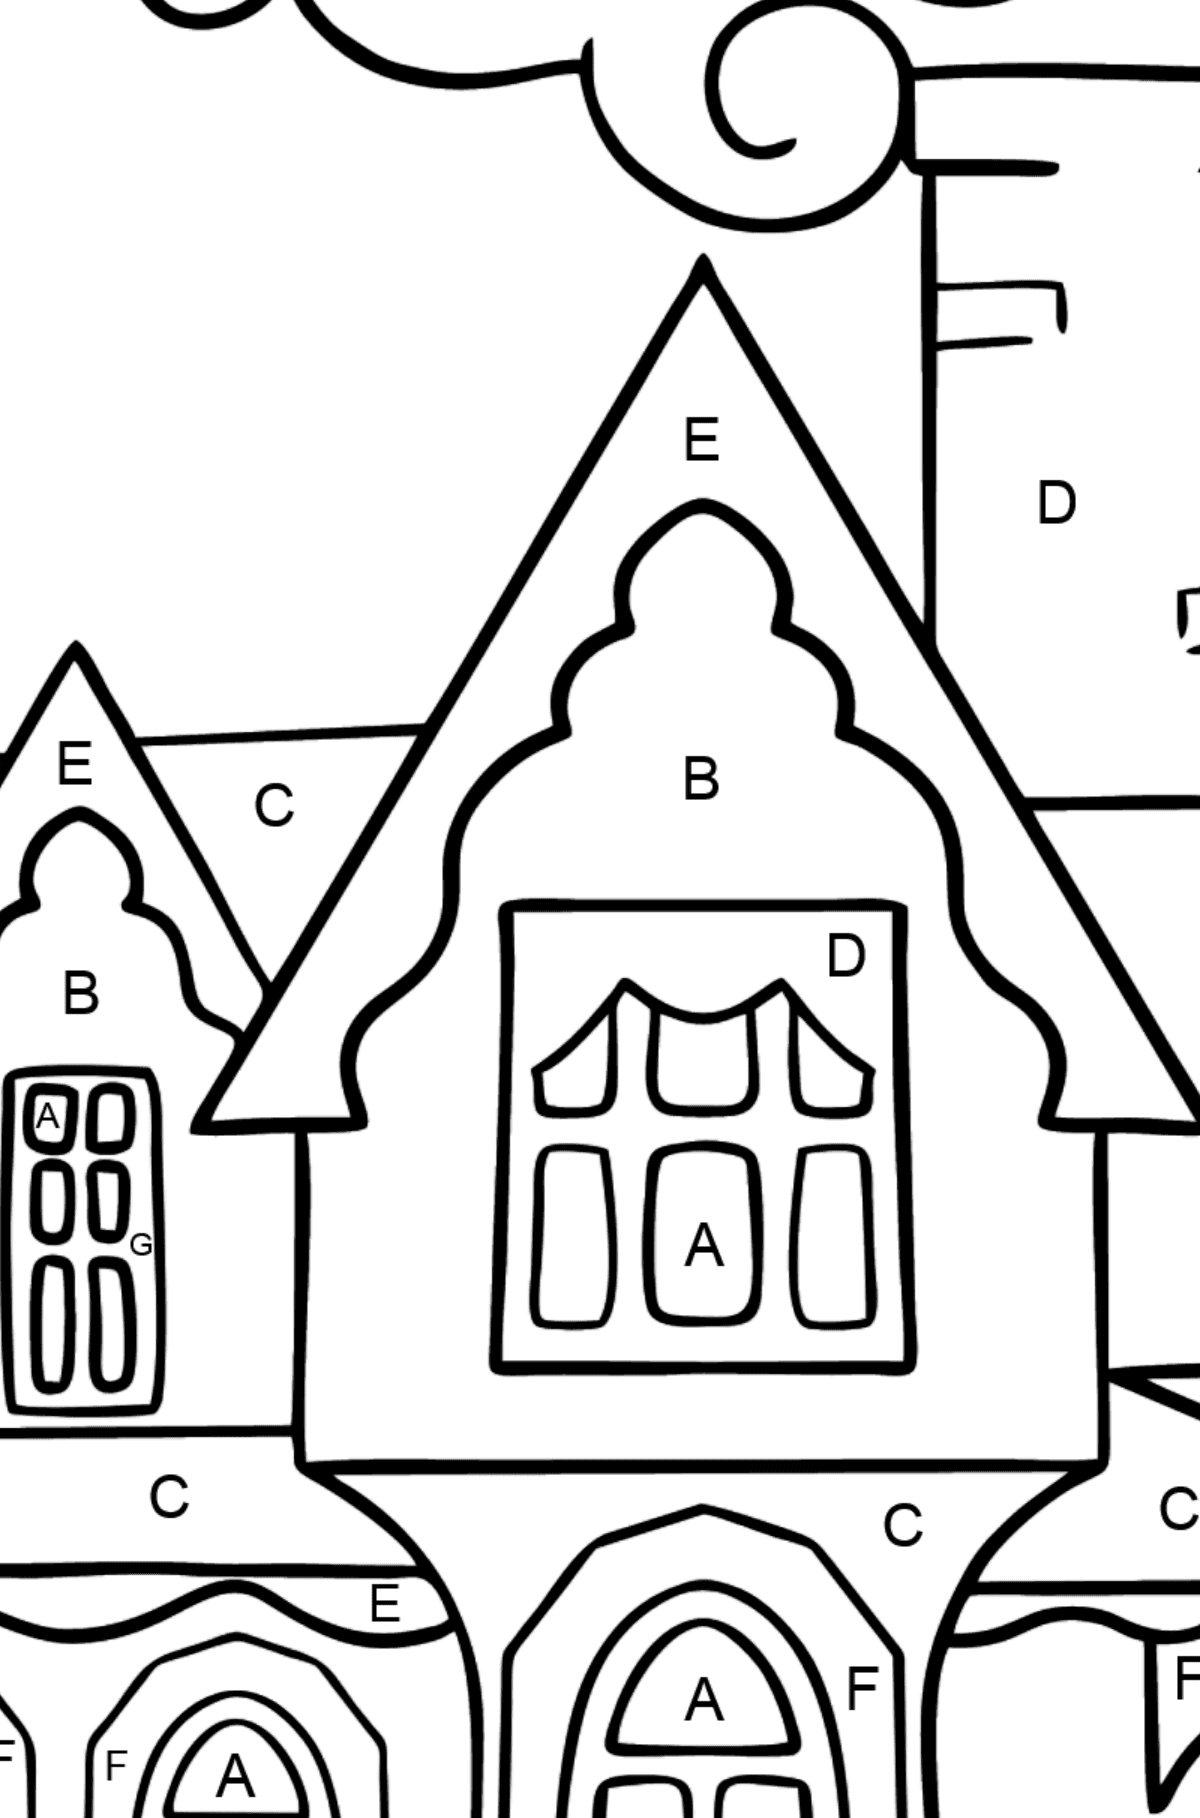 Coloring Page - A Miraculous House - Coloring by Letters for Kids